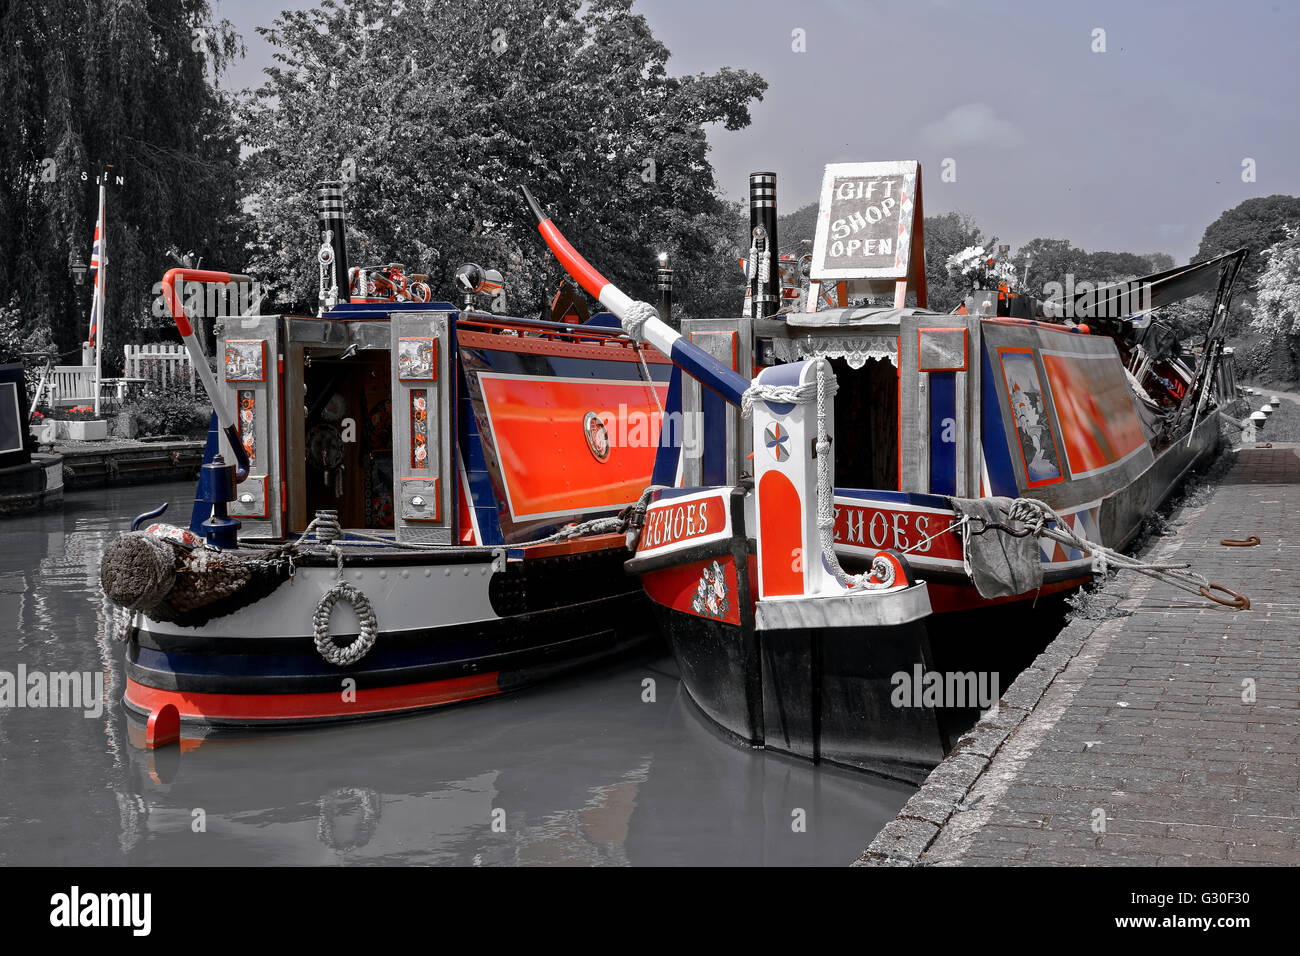 Typical boats on British Waterways. - Stock Image